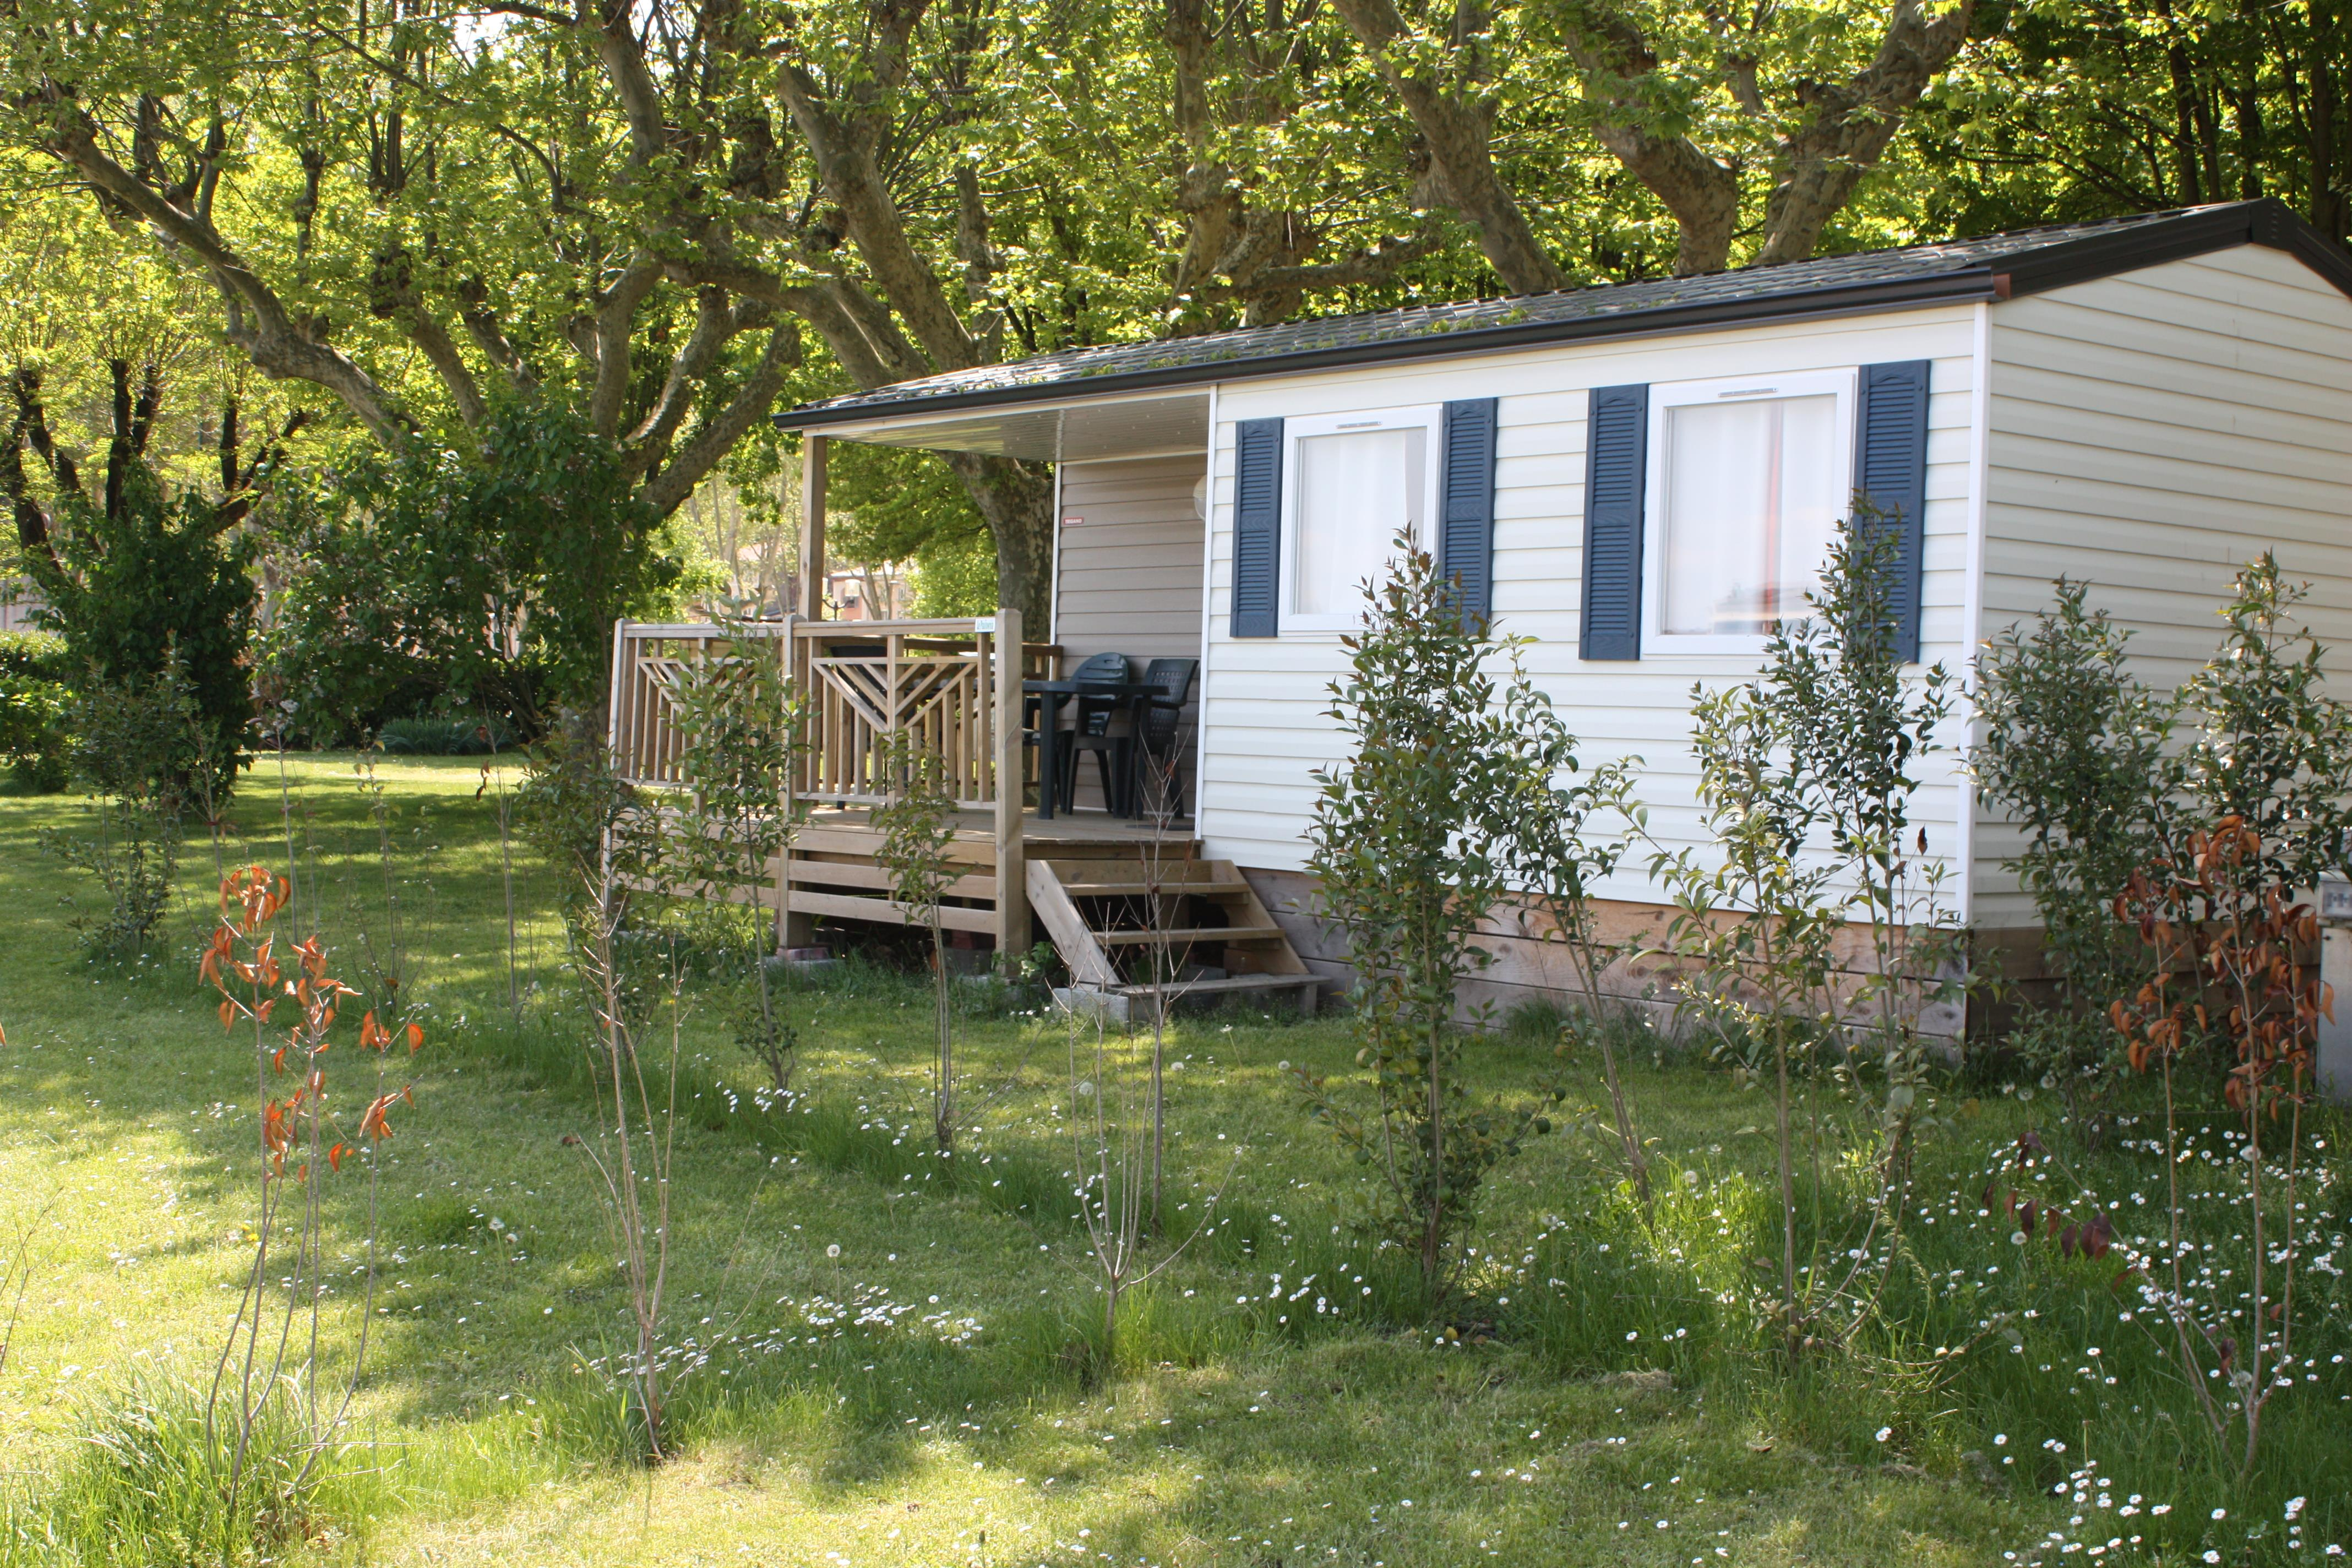 Mobilhome 29 m2 TI, 2 bedrooms, bathroom and toilets separated, in front of the hedge of the Rhône bank